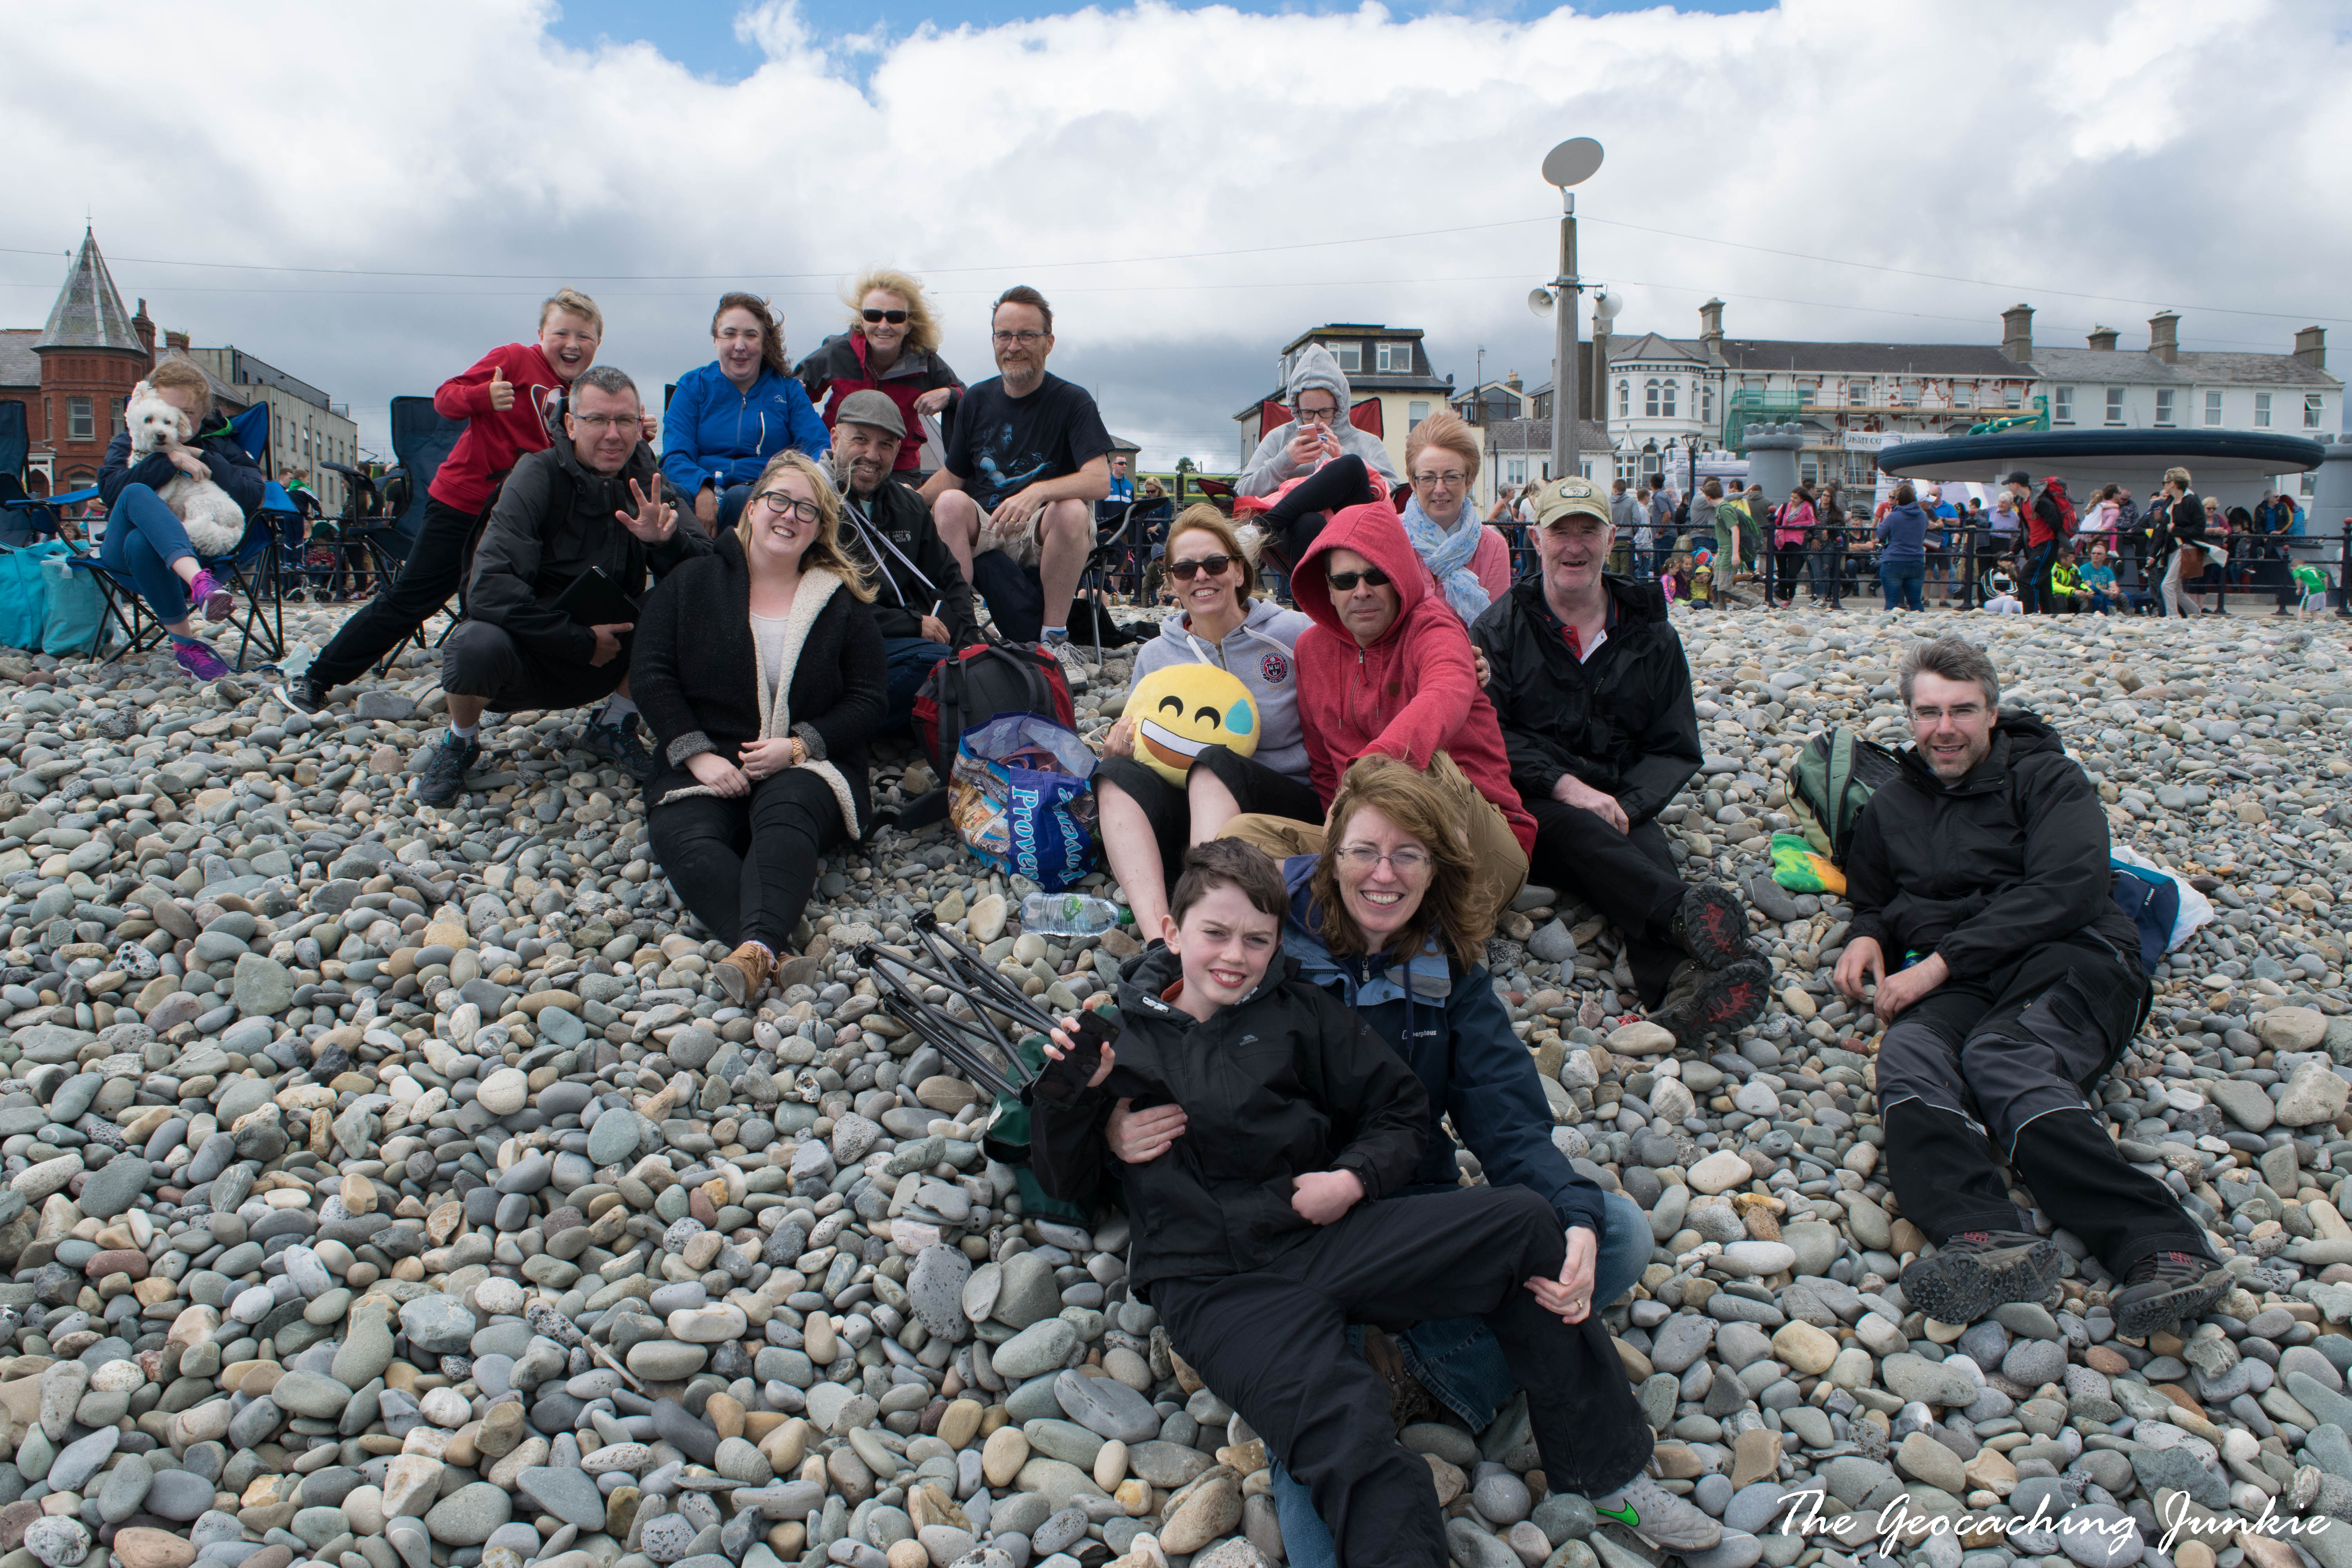 The Geocachingn Junkie bray event